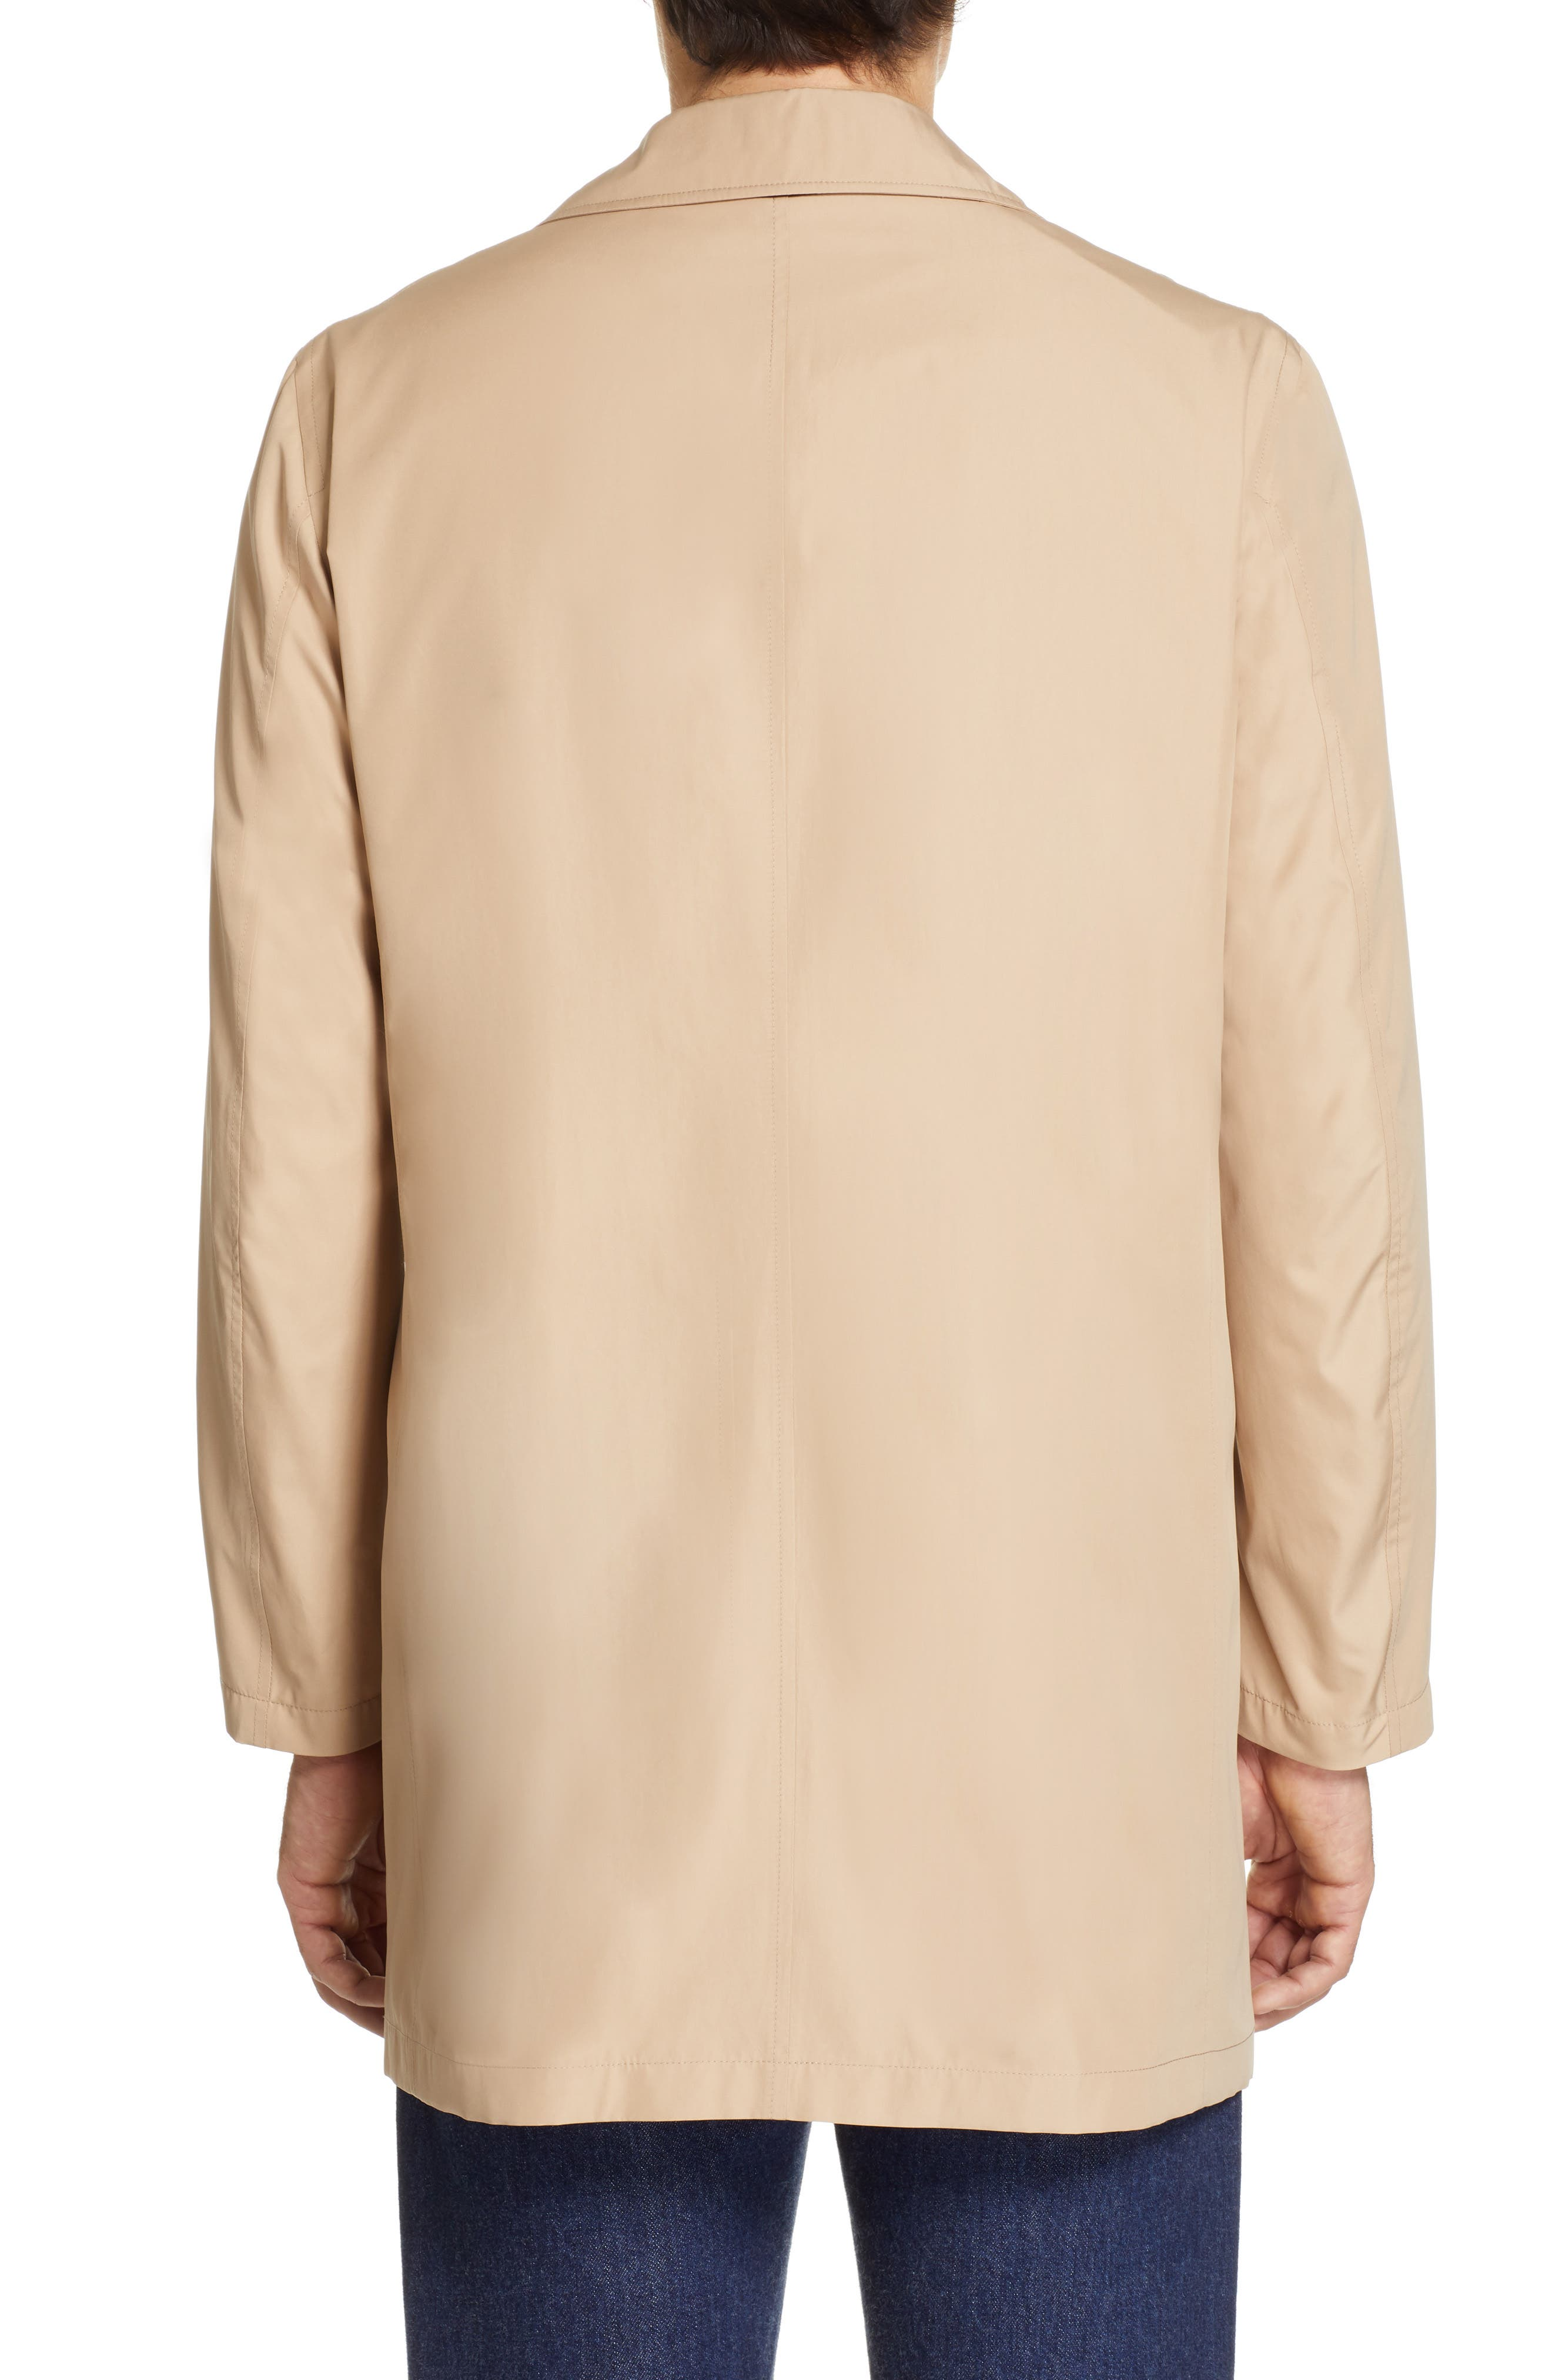 CANALI, Lightweight Overcoat, Alternate thumbnail 2, color, BEIGE